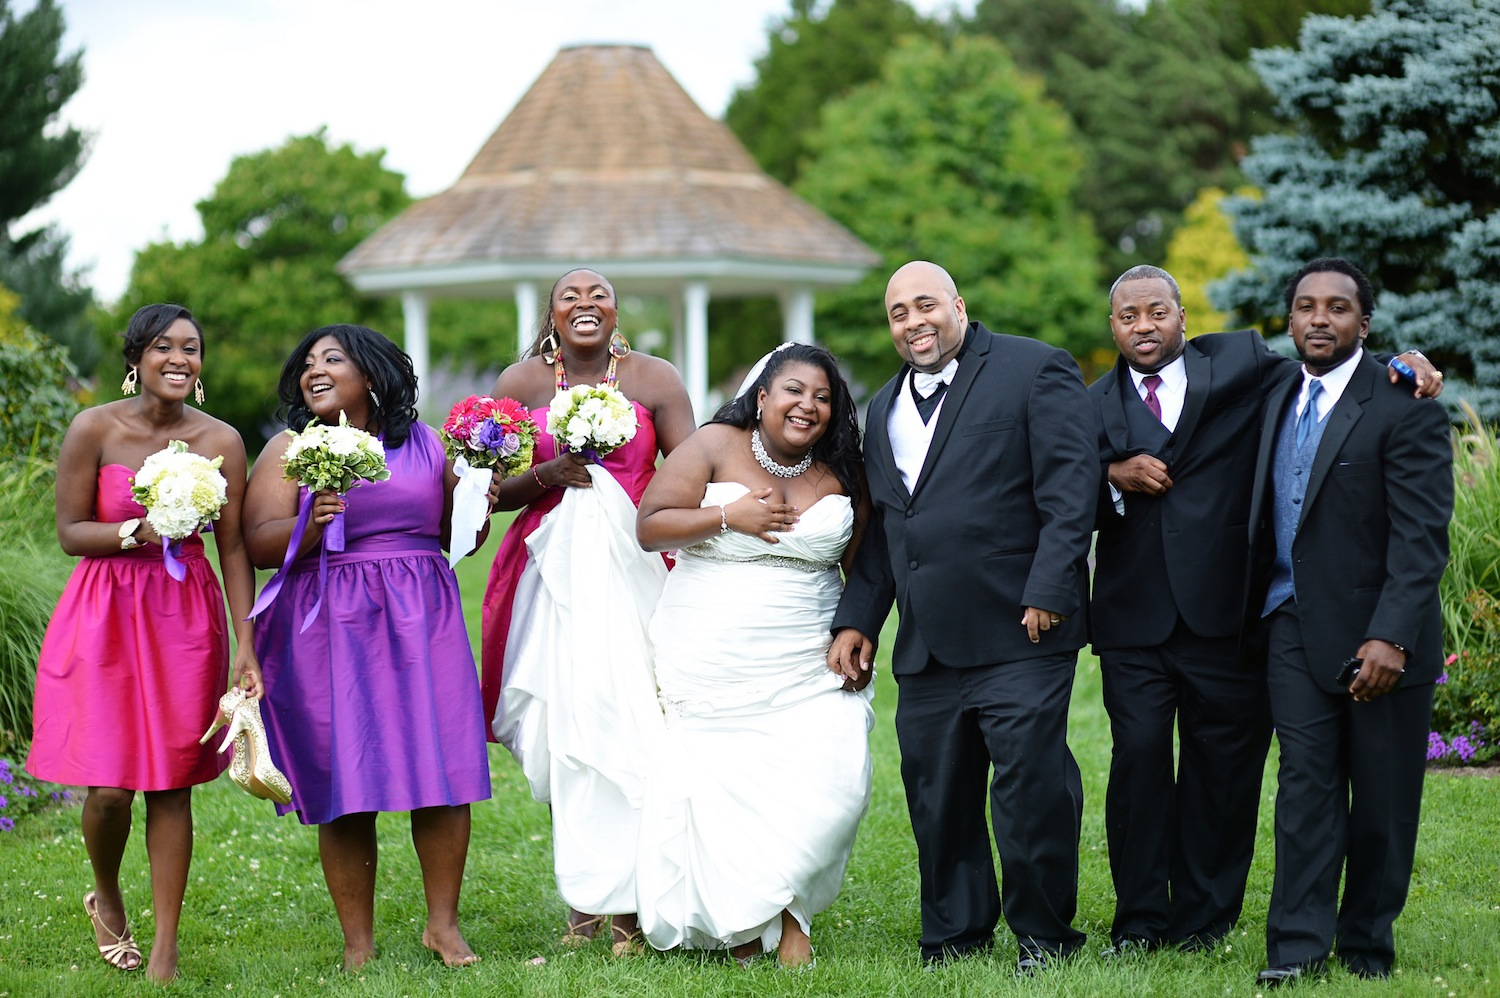 The Casual Wedding Party Family Shot